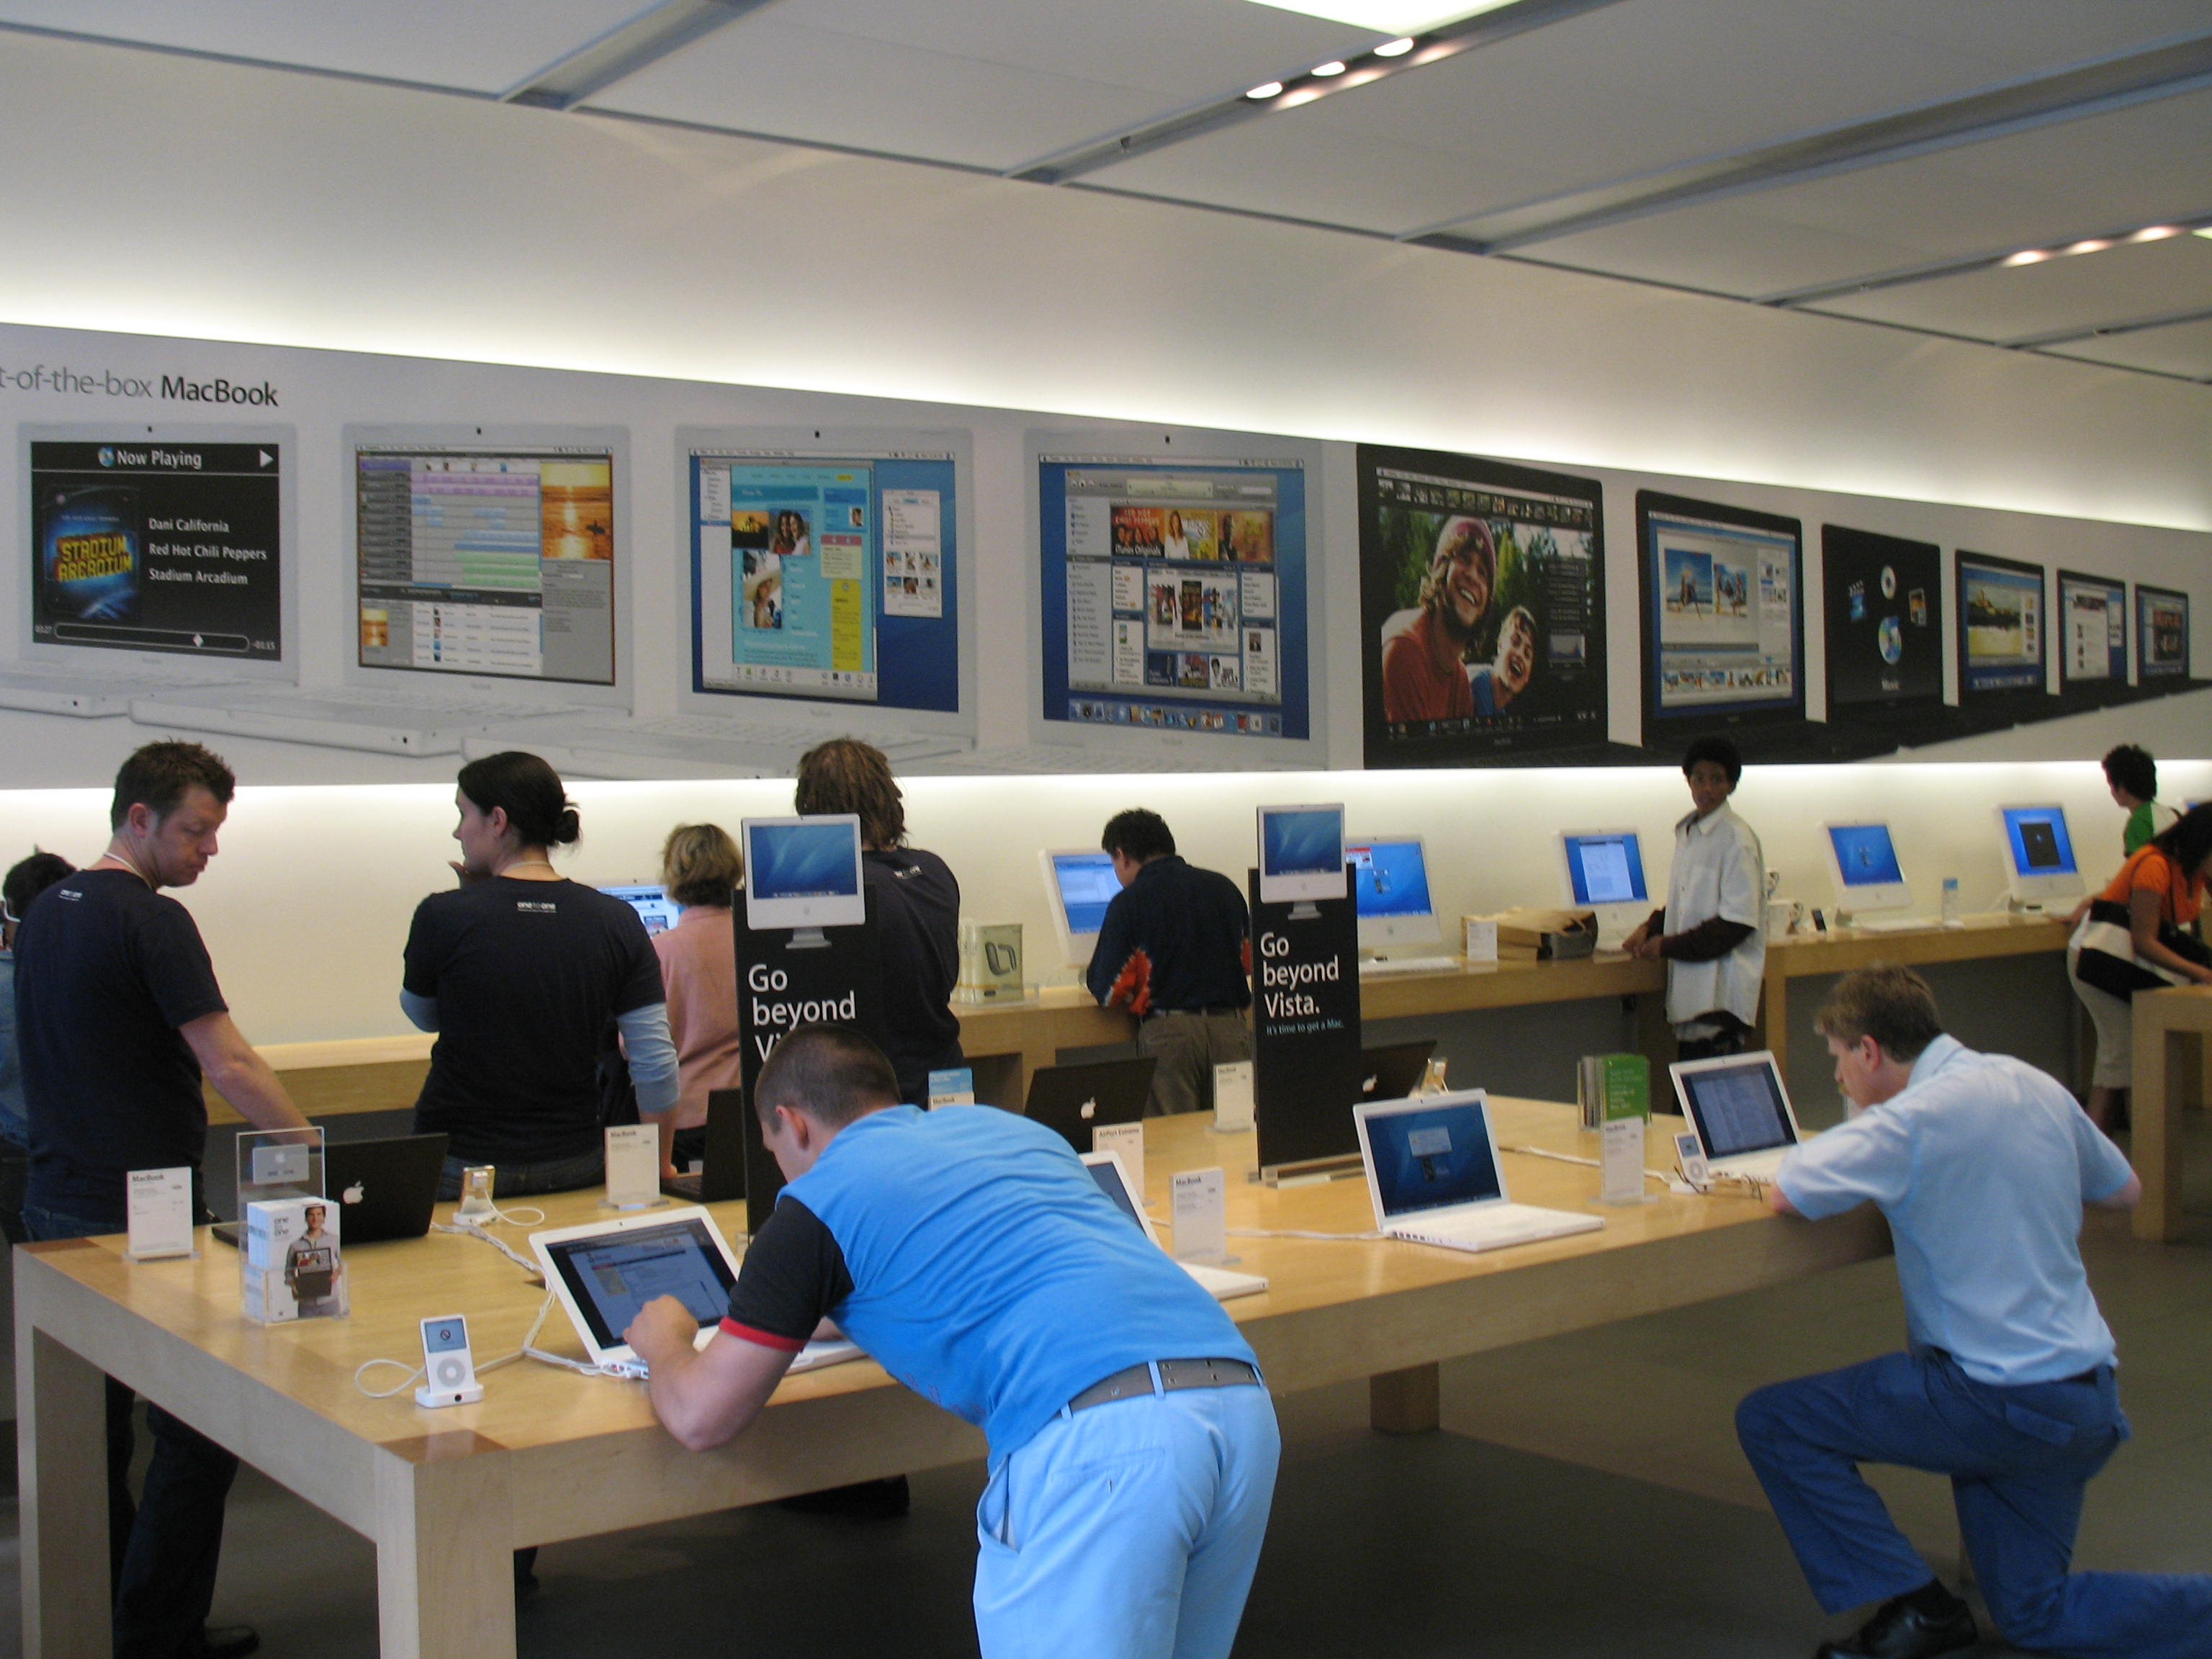 Apple Store Representatives Could Soon Know You're There Thanks To An App